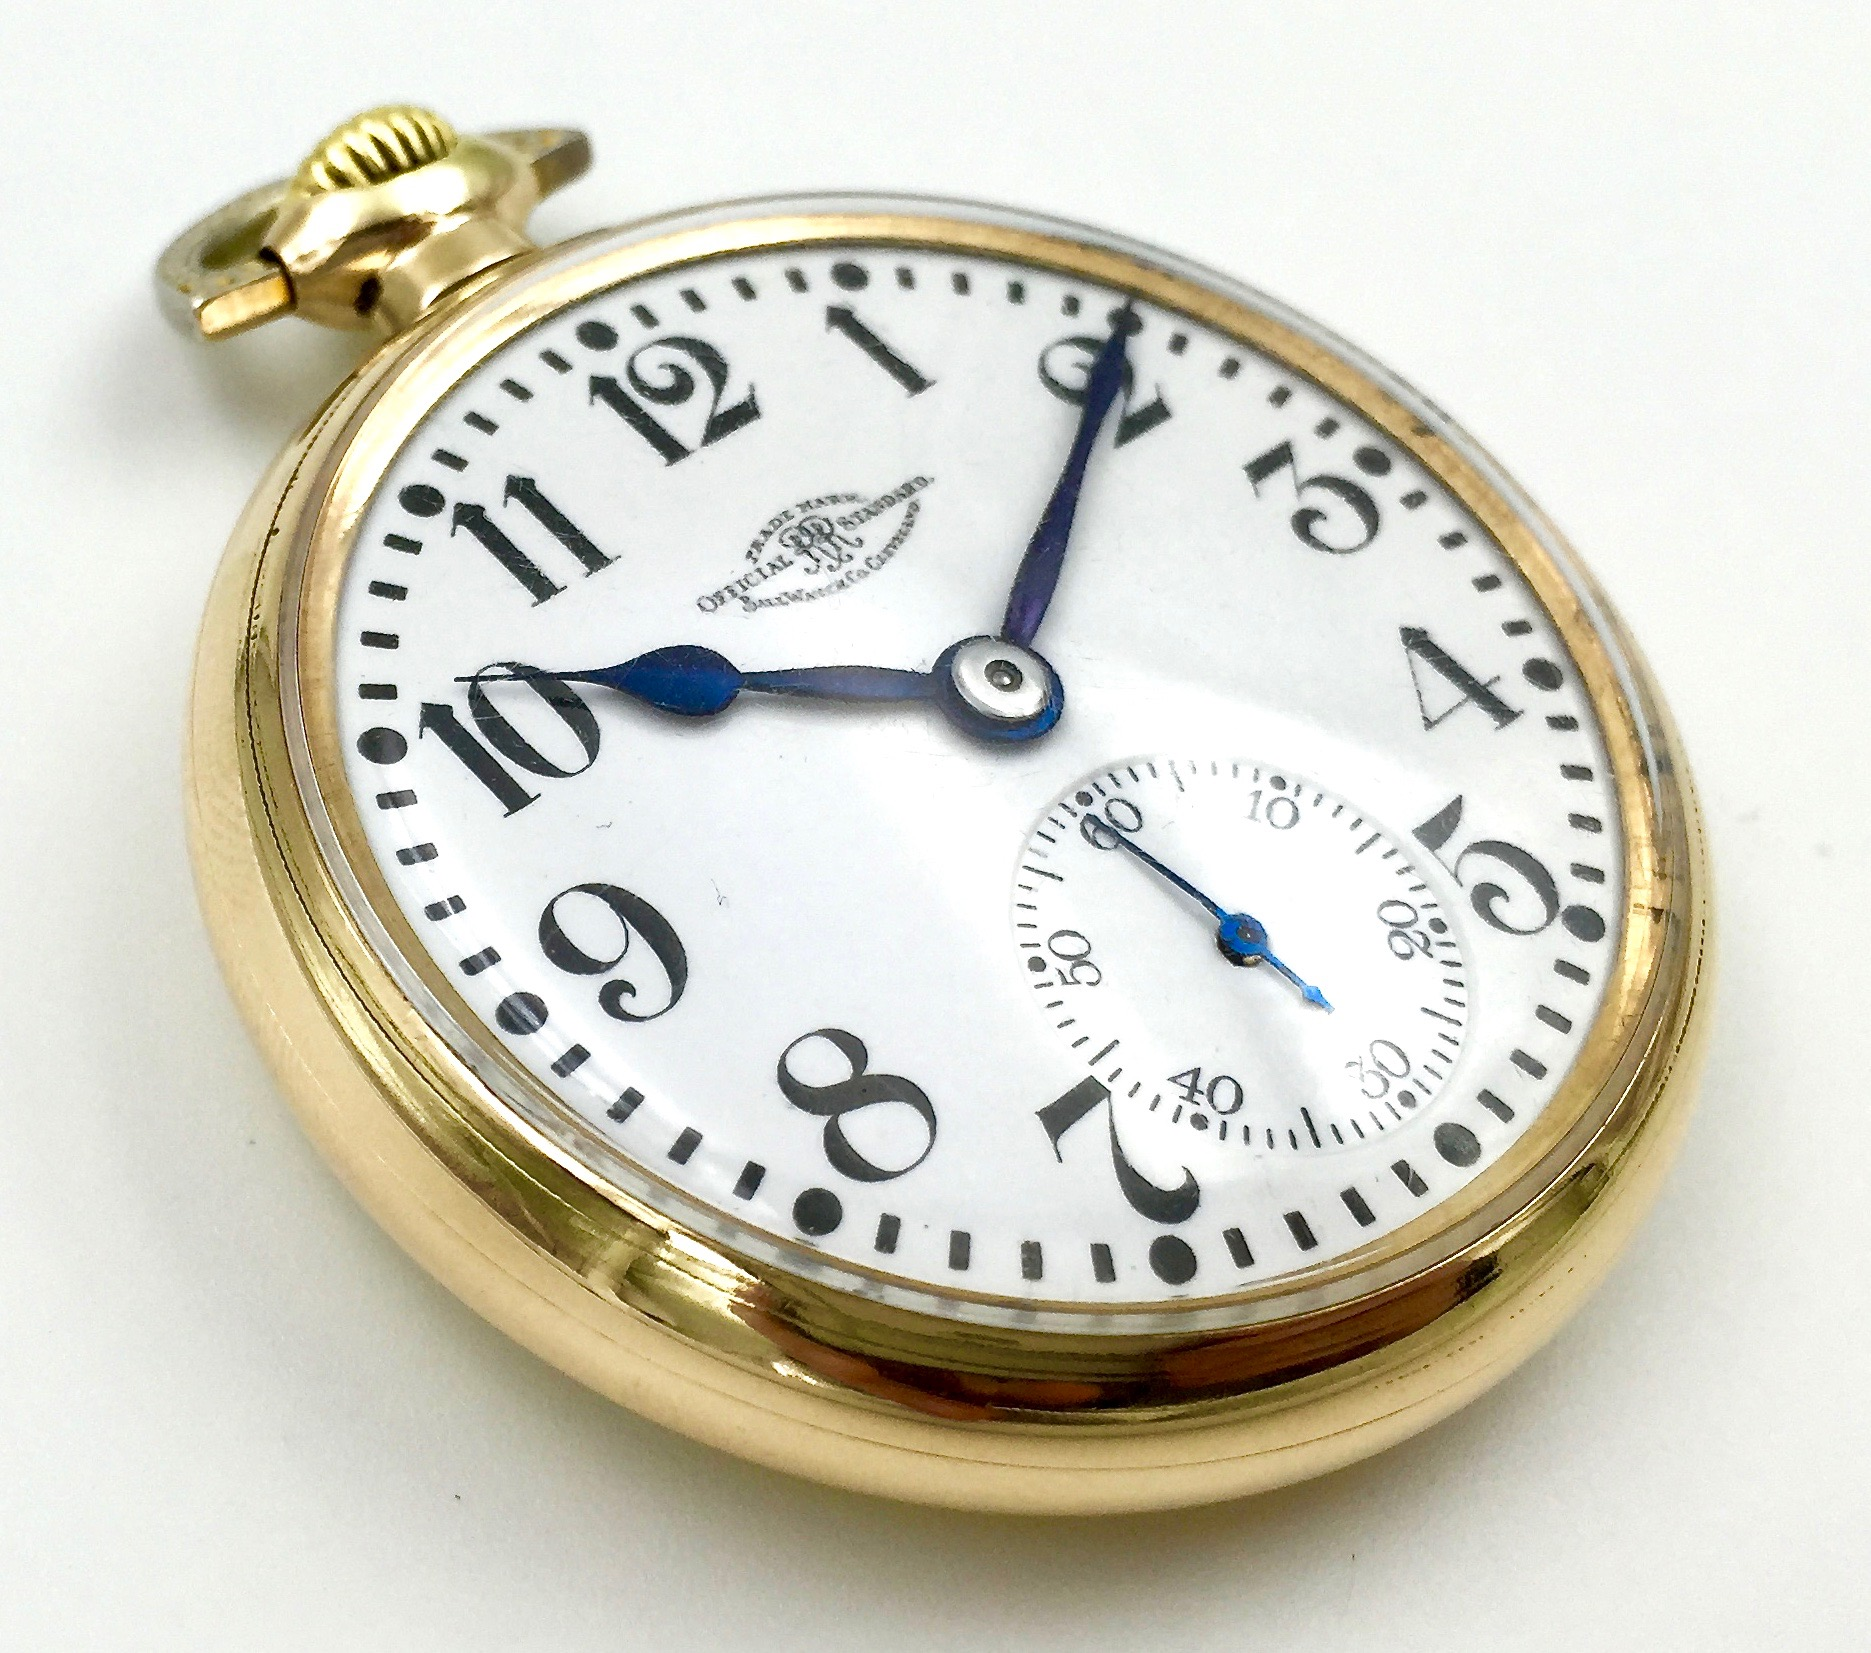 waltham railroad ball watch standard filled products gold pocket watches antique by jewels official